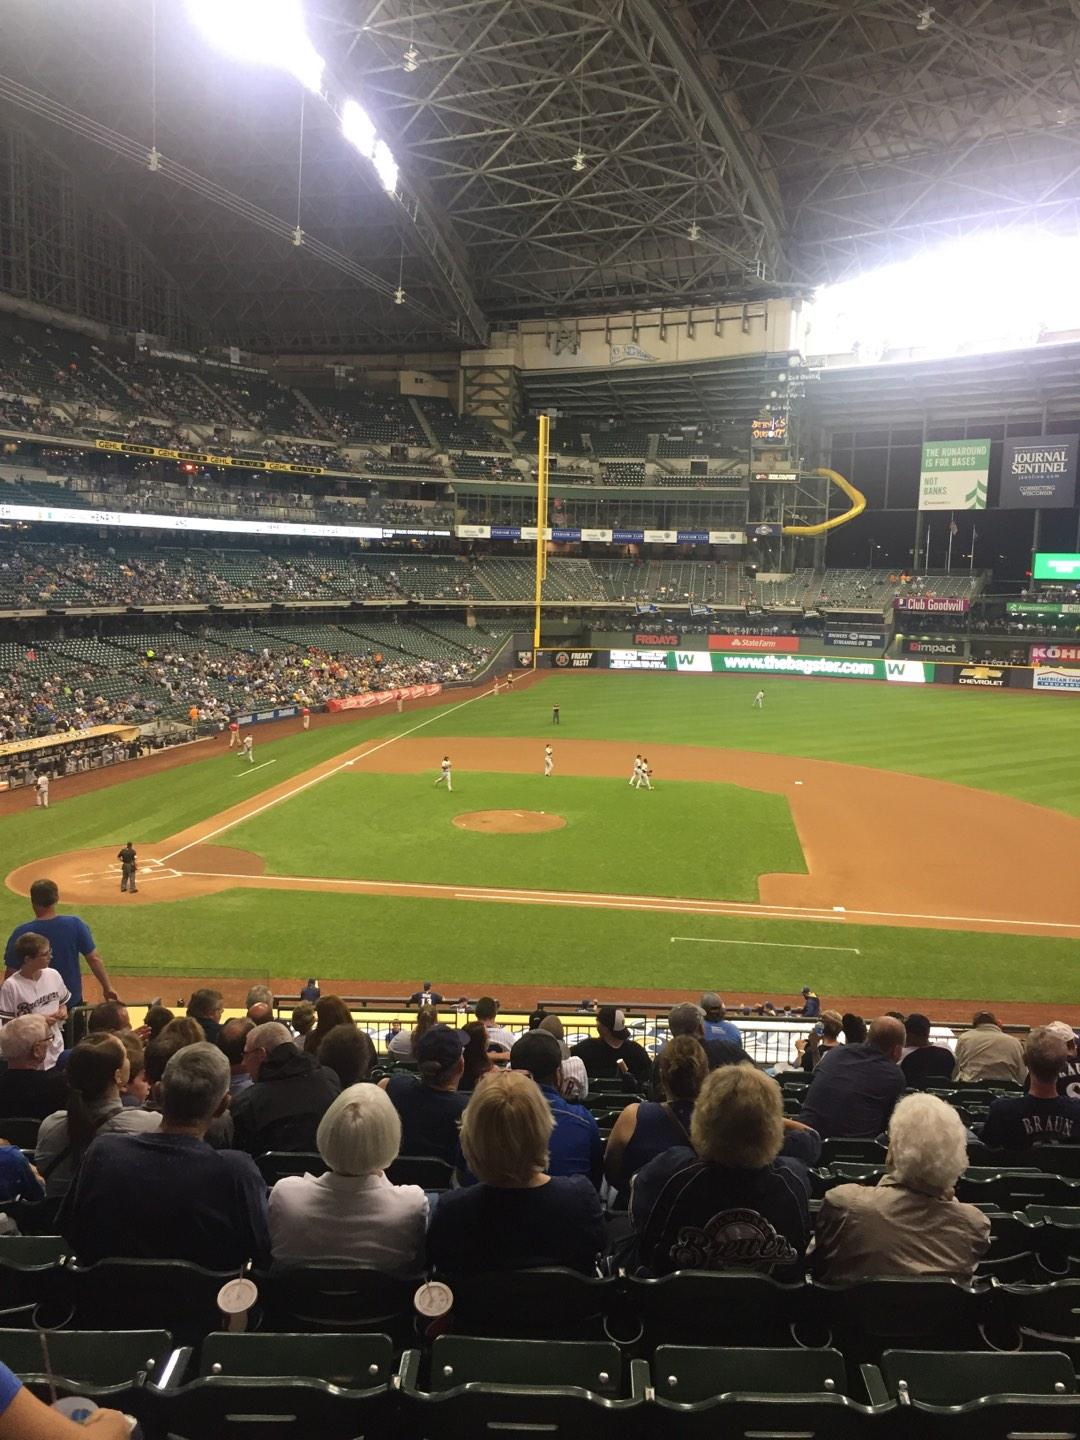 Miller Park Section 213 Row 13 Seat 6